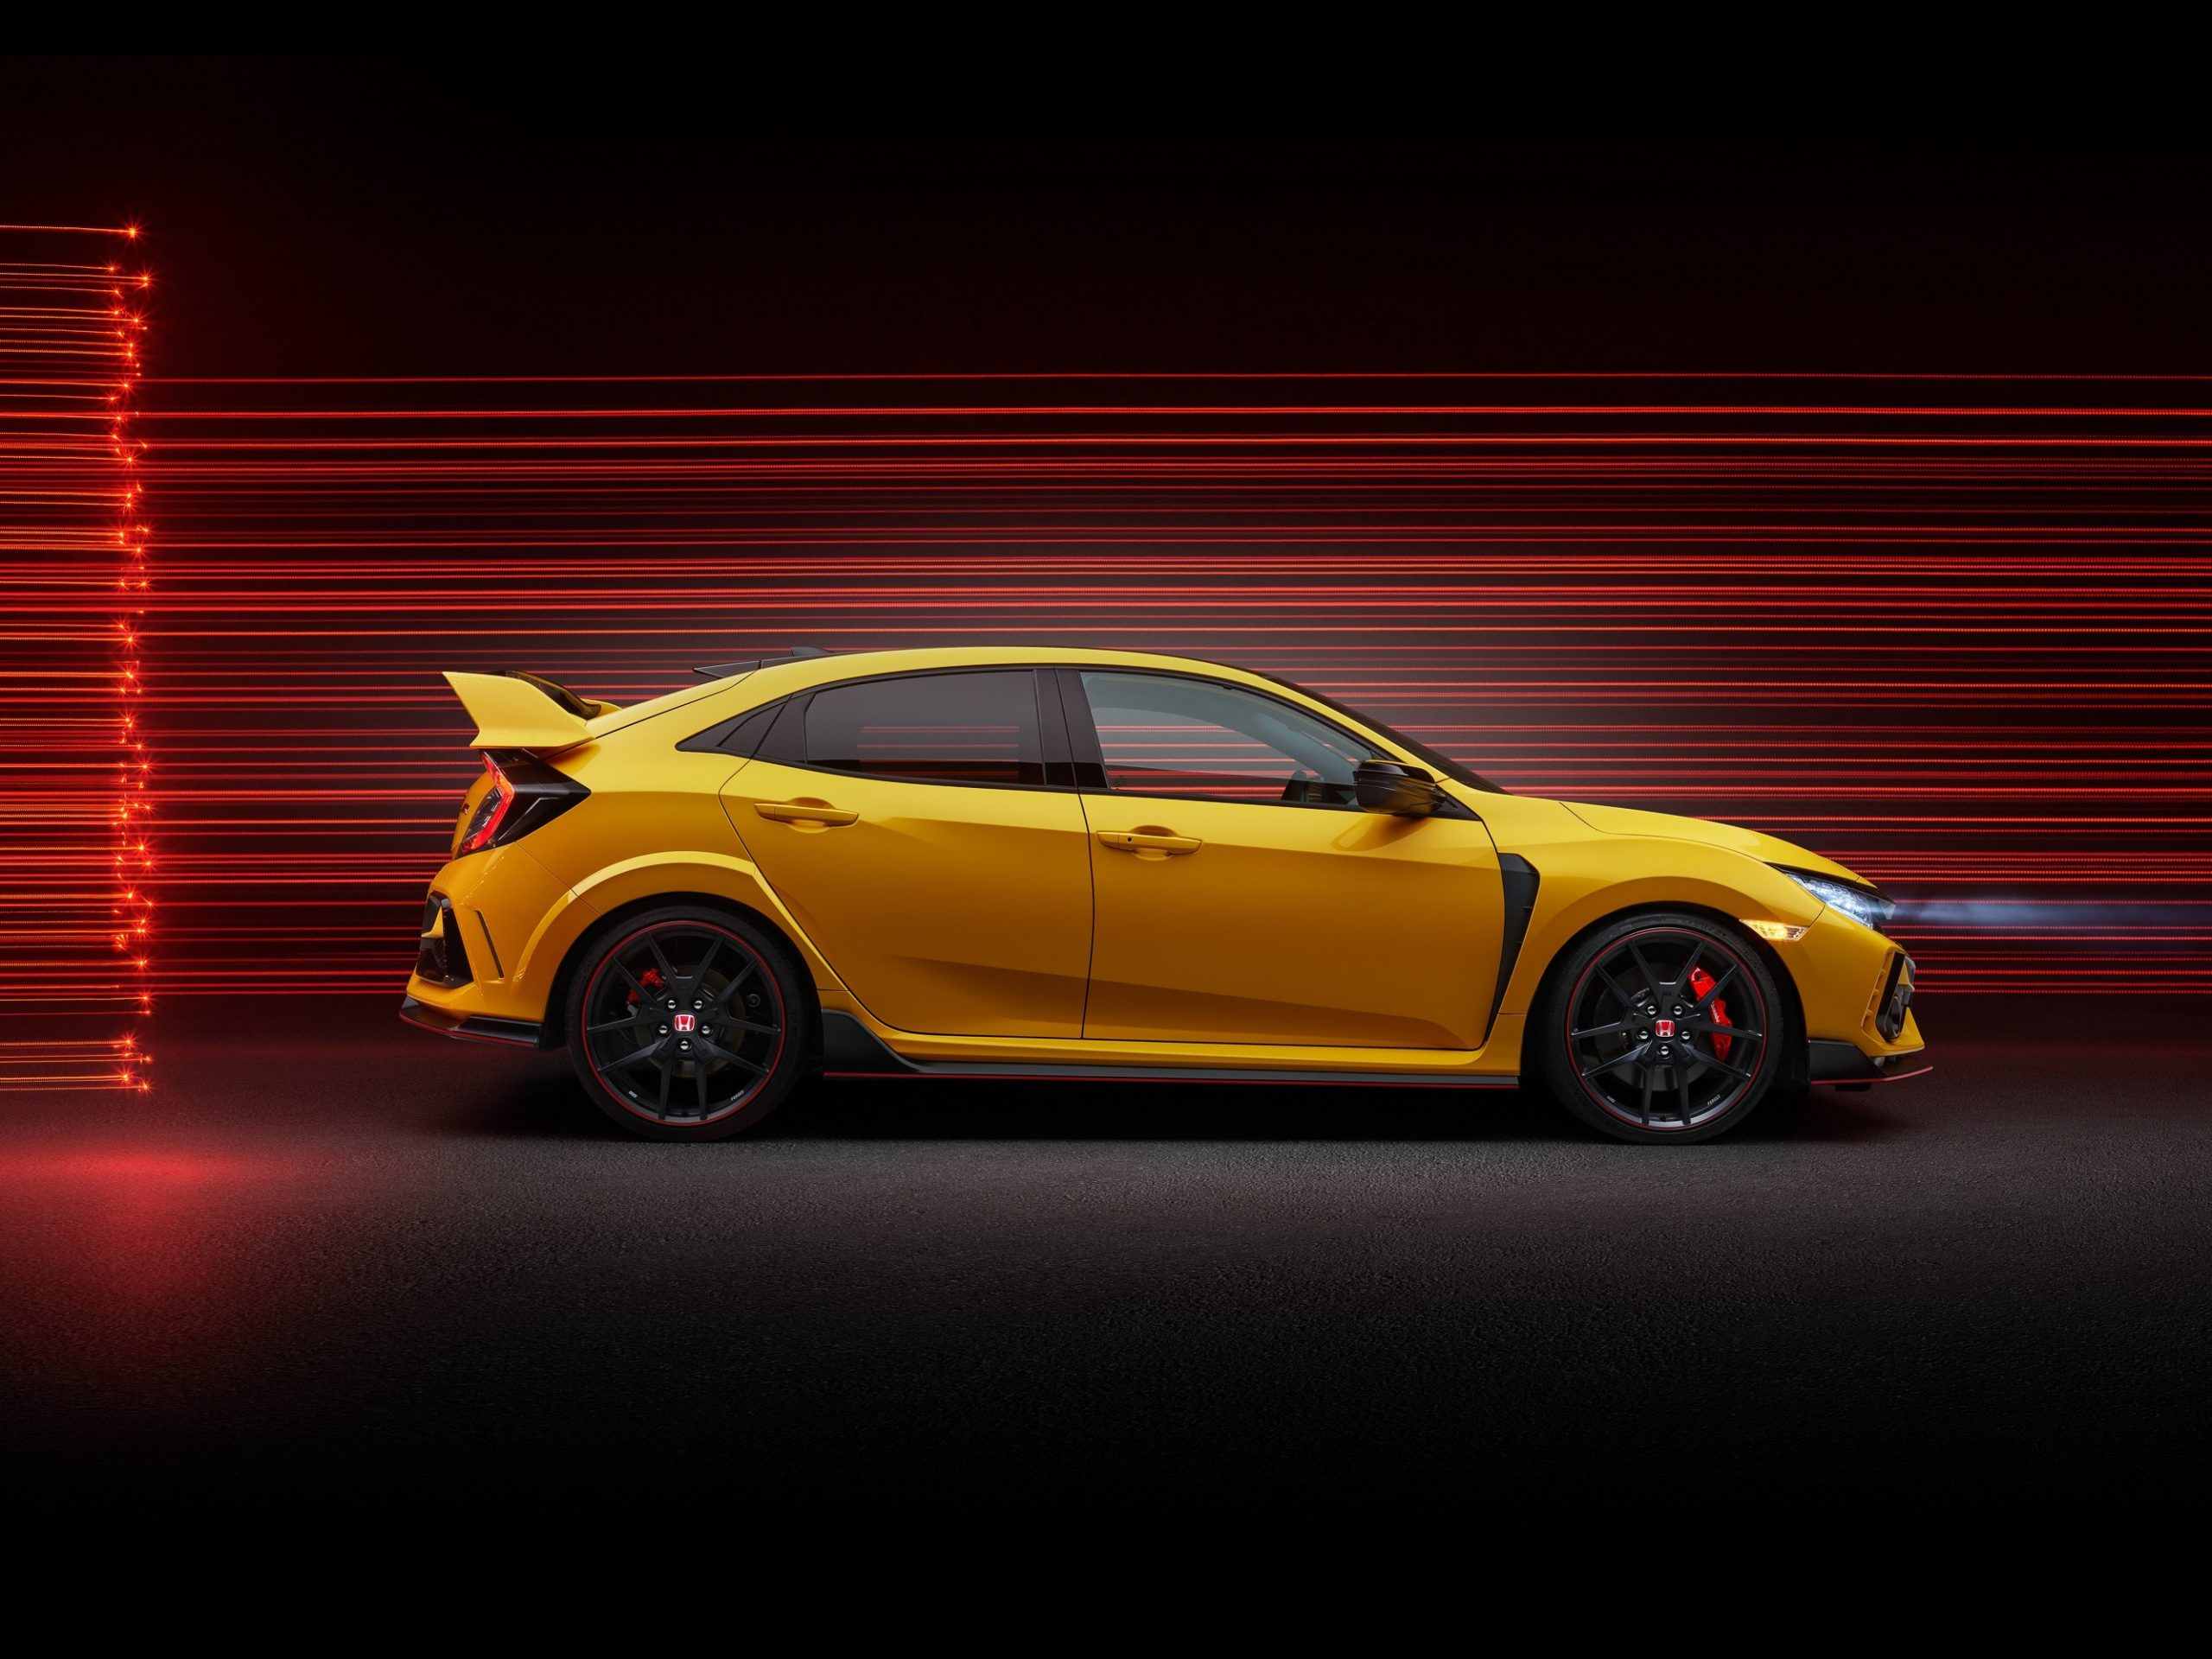 Civic Type R Limited Edition Side Profile